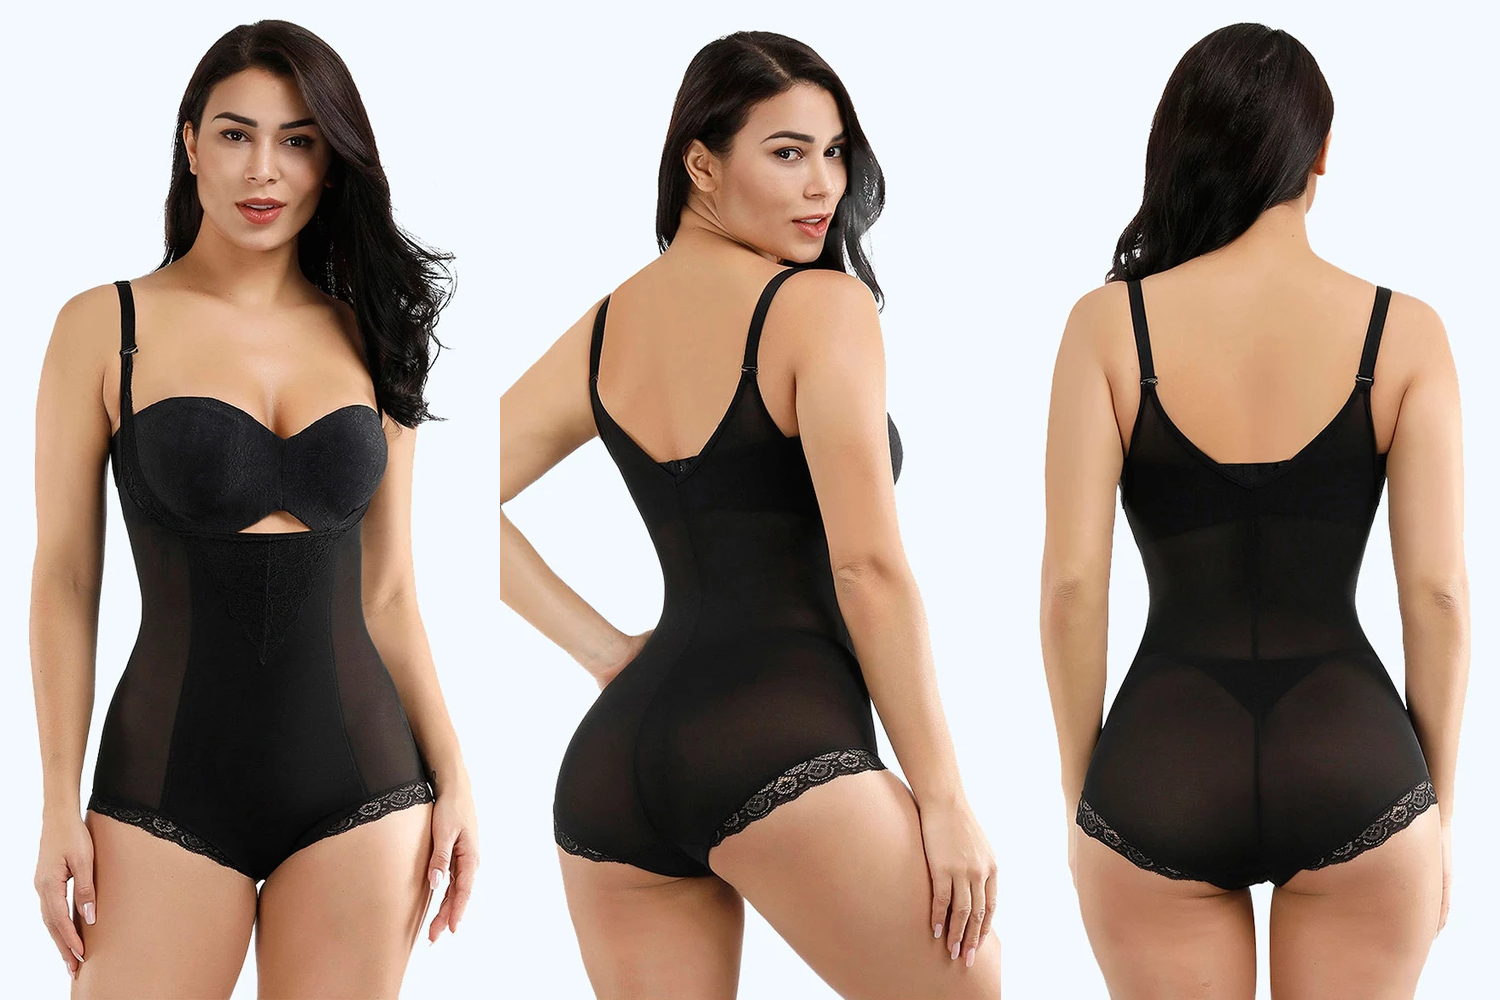 three pictures of a woman wearing shapewear